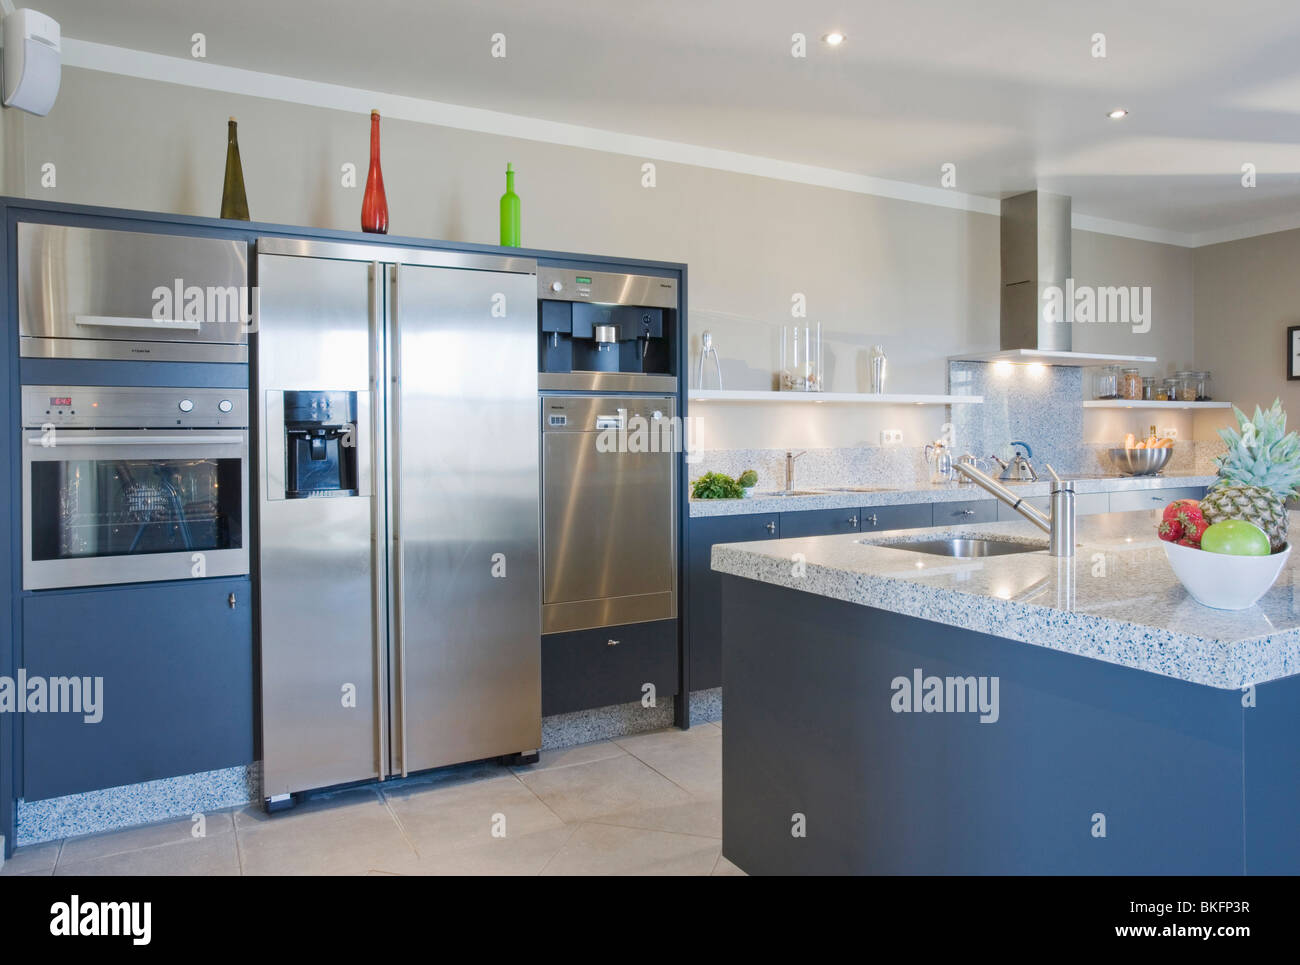 american style stainless steel fridge freezer and ovens in. Black Bedroom Furniture Sets. Home Design Ideas